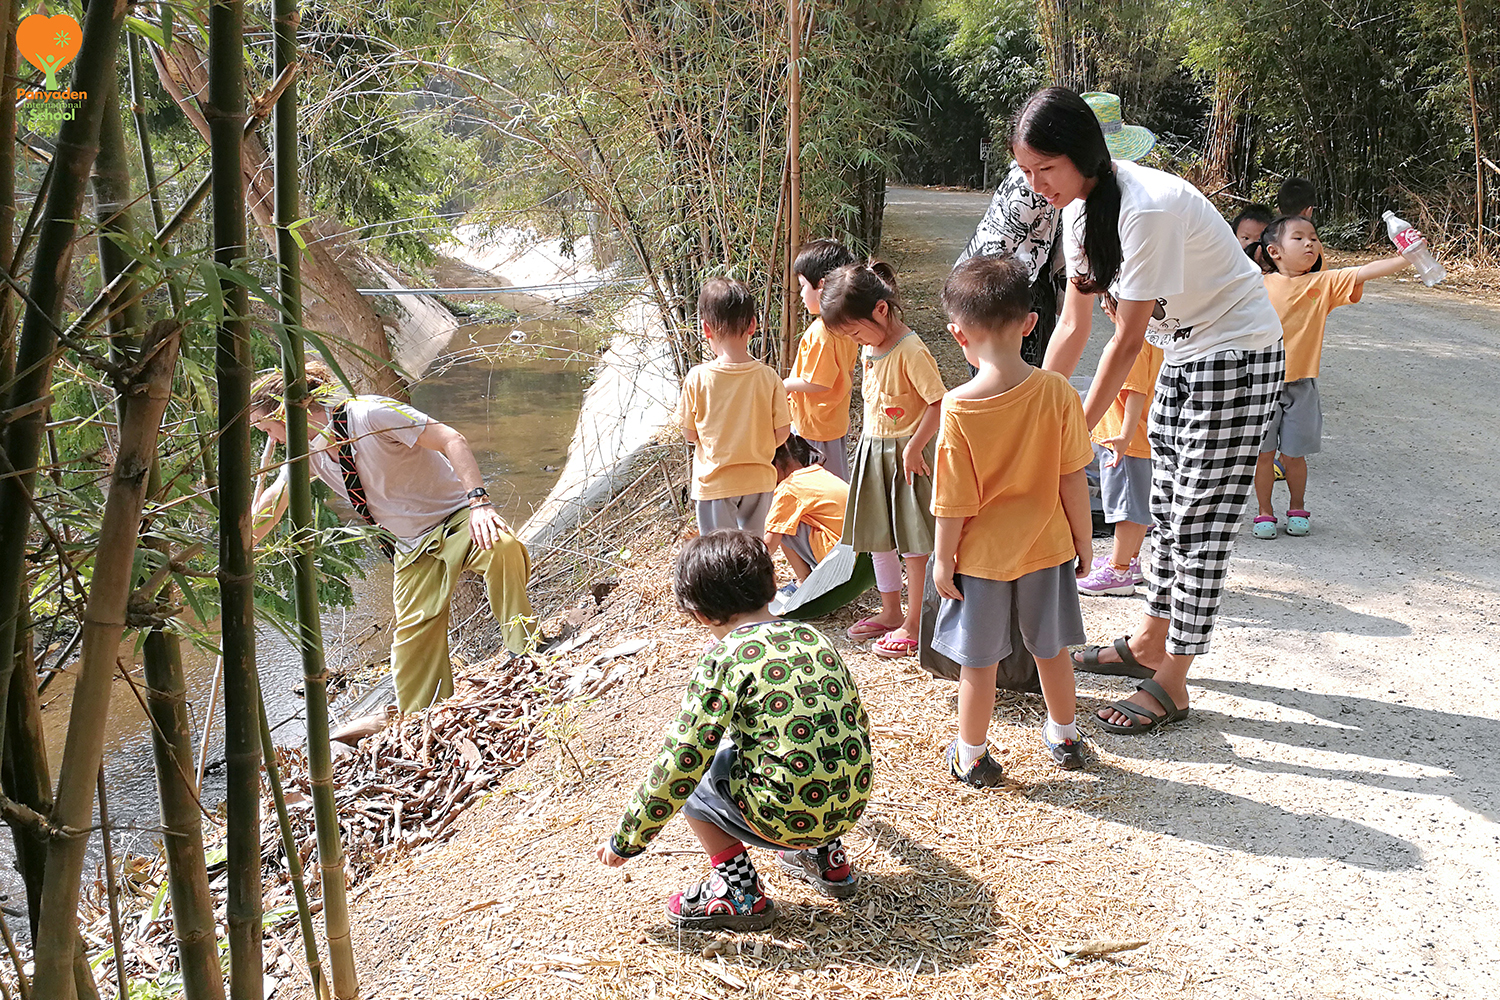 Panyaden KIndergarten marks Earth Day by clearing litter at school